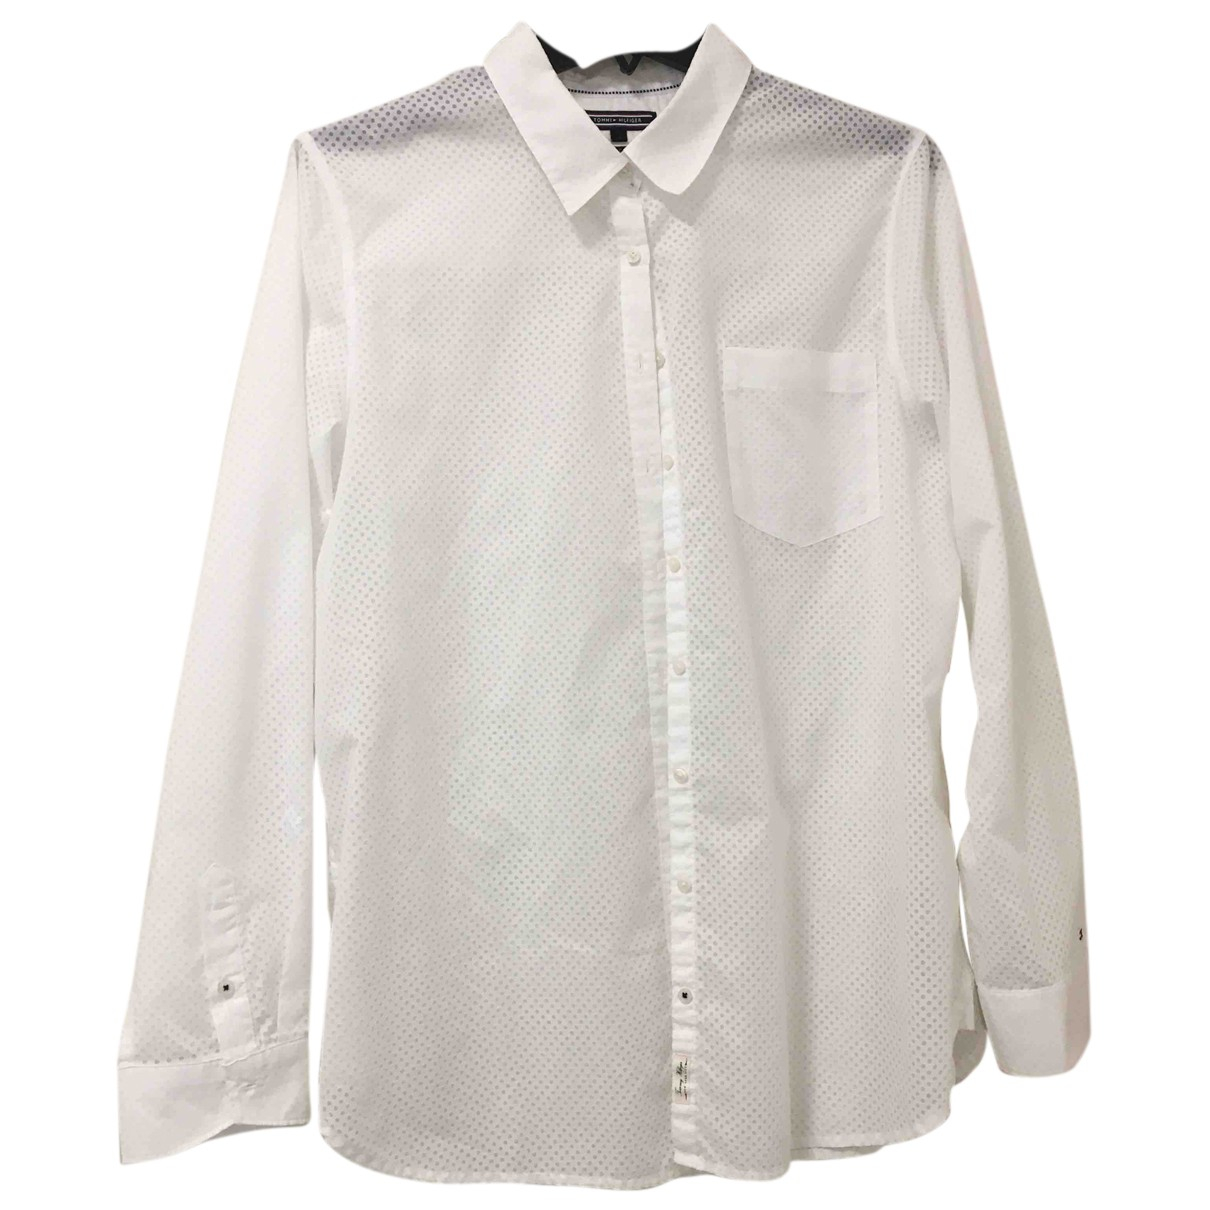 Tommy Hilfiger N White Cotton  top for Women 12 UK